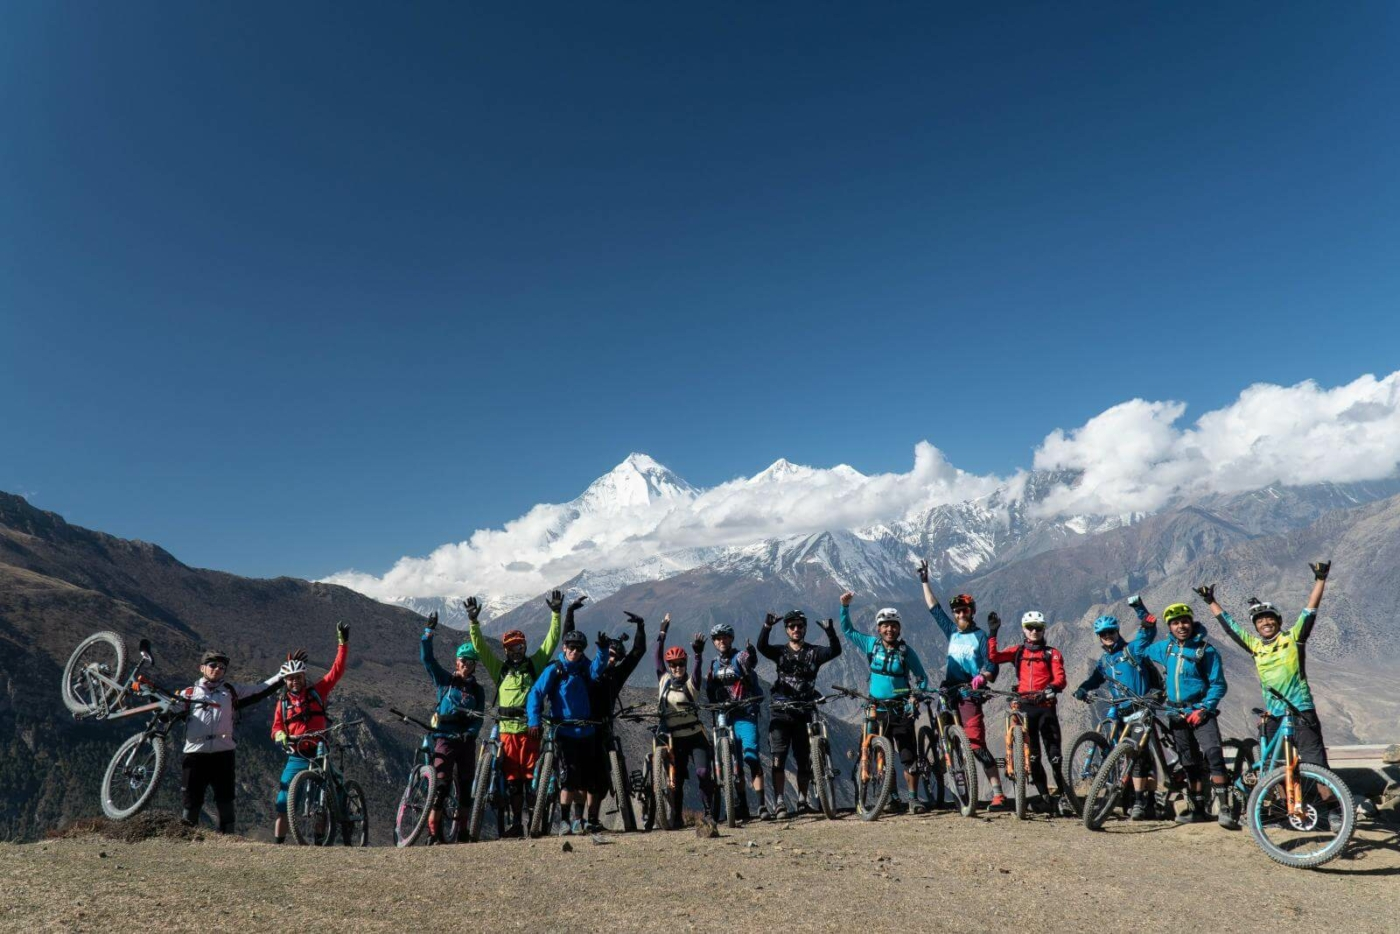 Mountain Bikers in Front of Mountain Range